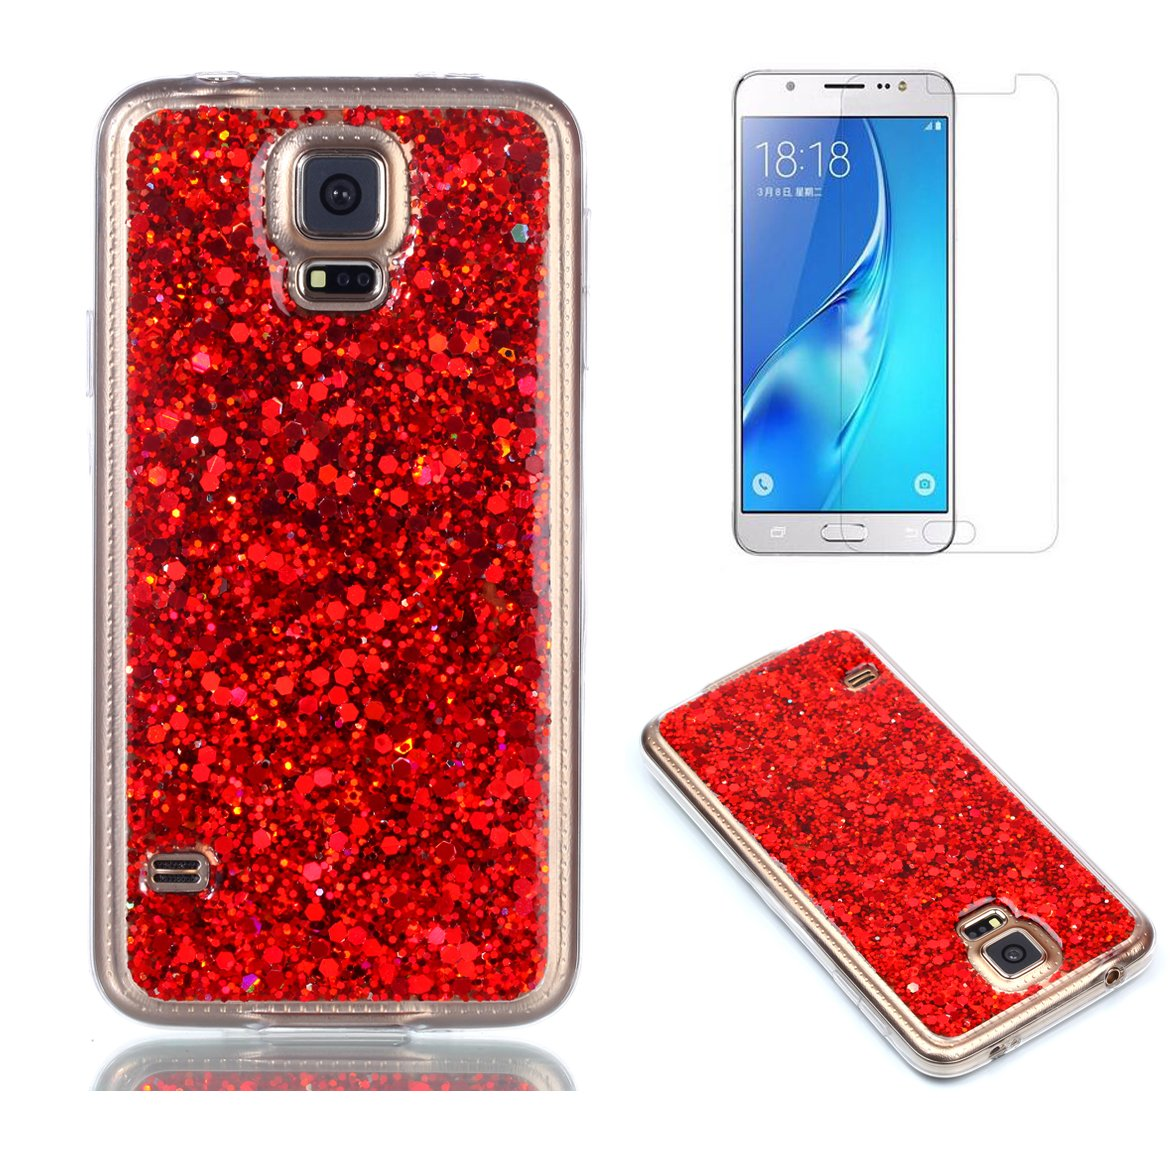 Fit for Samsung Galaxy S5 / S5 Neo Glitter Case with Screen Protector, OYIME [Silver Sequins] Shiny Bling Luxury Design Clear Ultra Thin Soft Rubber Protective Back Cover Transparent Scratch Resistant Drop Protection Bumper